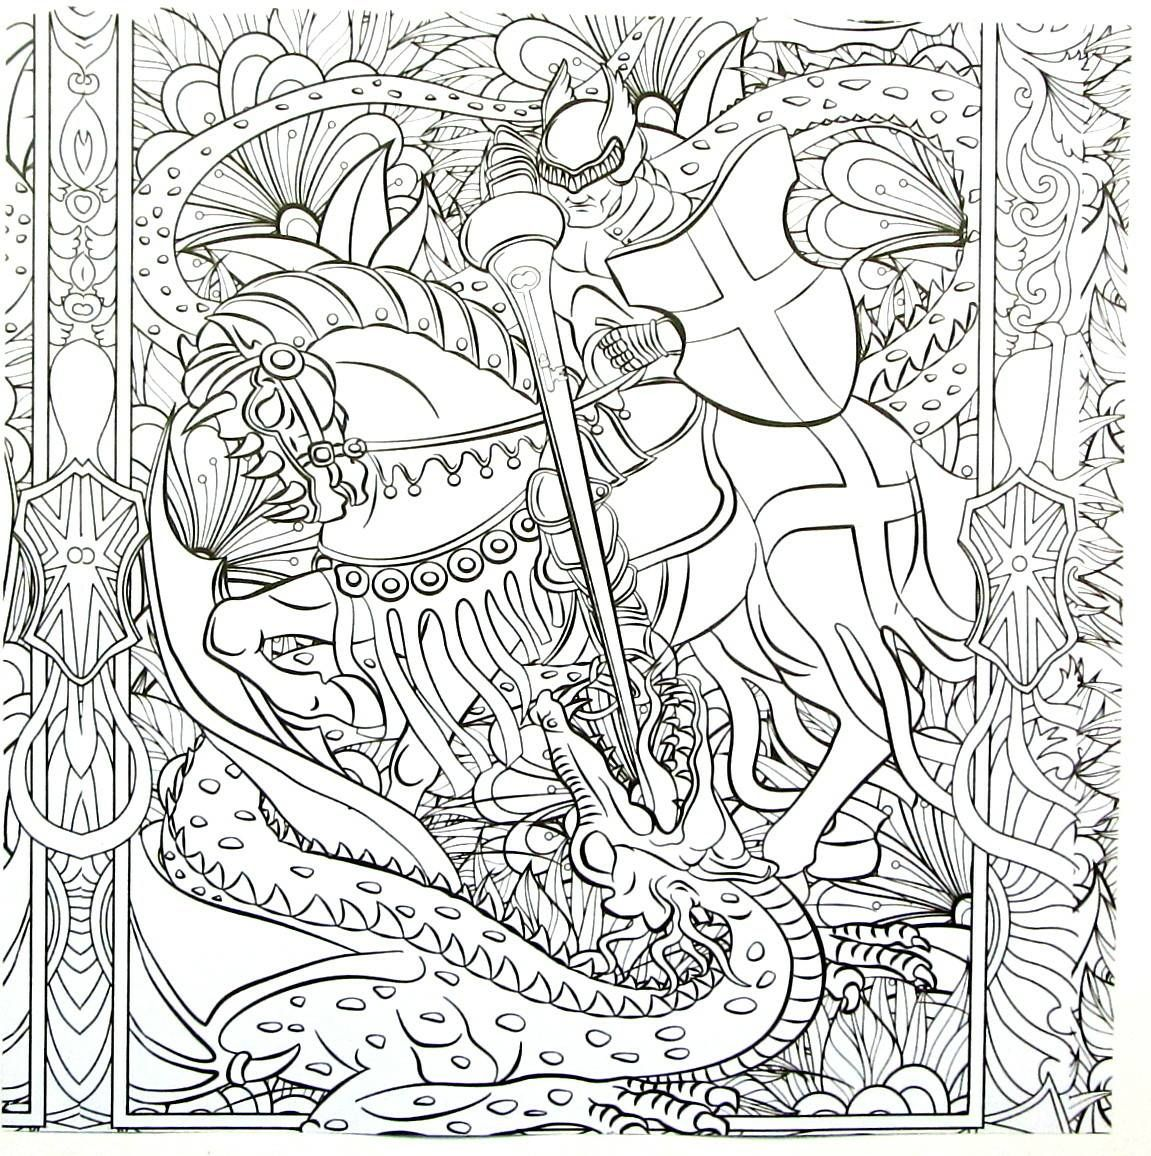 Knight On Horseback Fighting Dragon Detailed Coloring Book Page